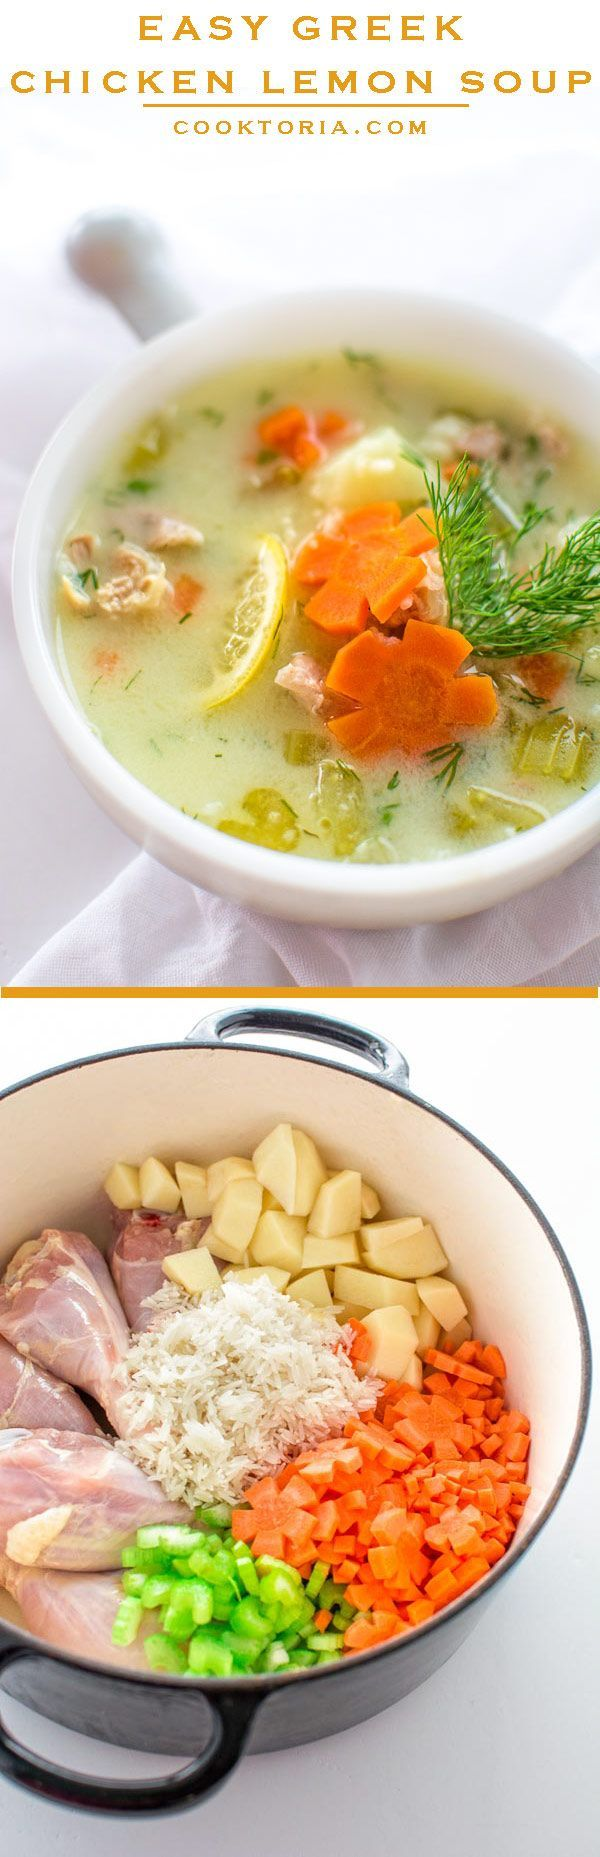 Easy Greek Chicken Lemon Soup. This brightly flavored chicken and rice soup will become your favorite in no time! ❤ http://COOKTORIA.COM